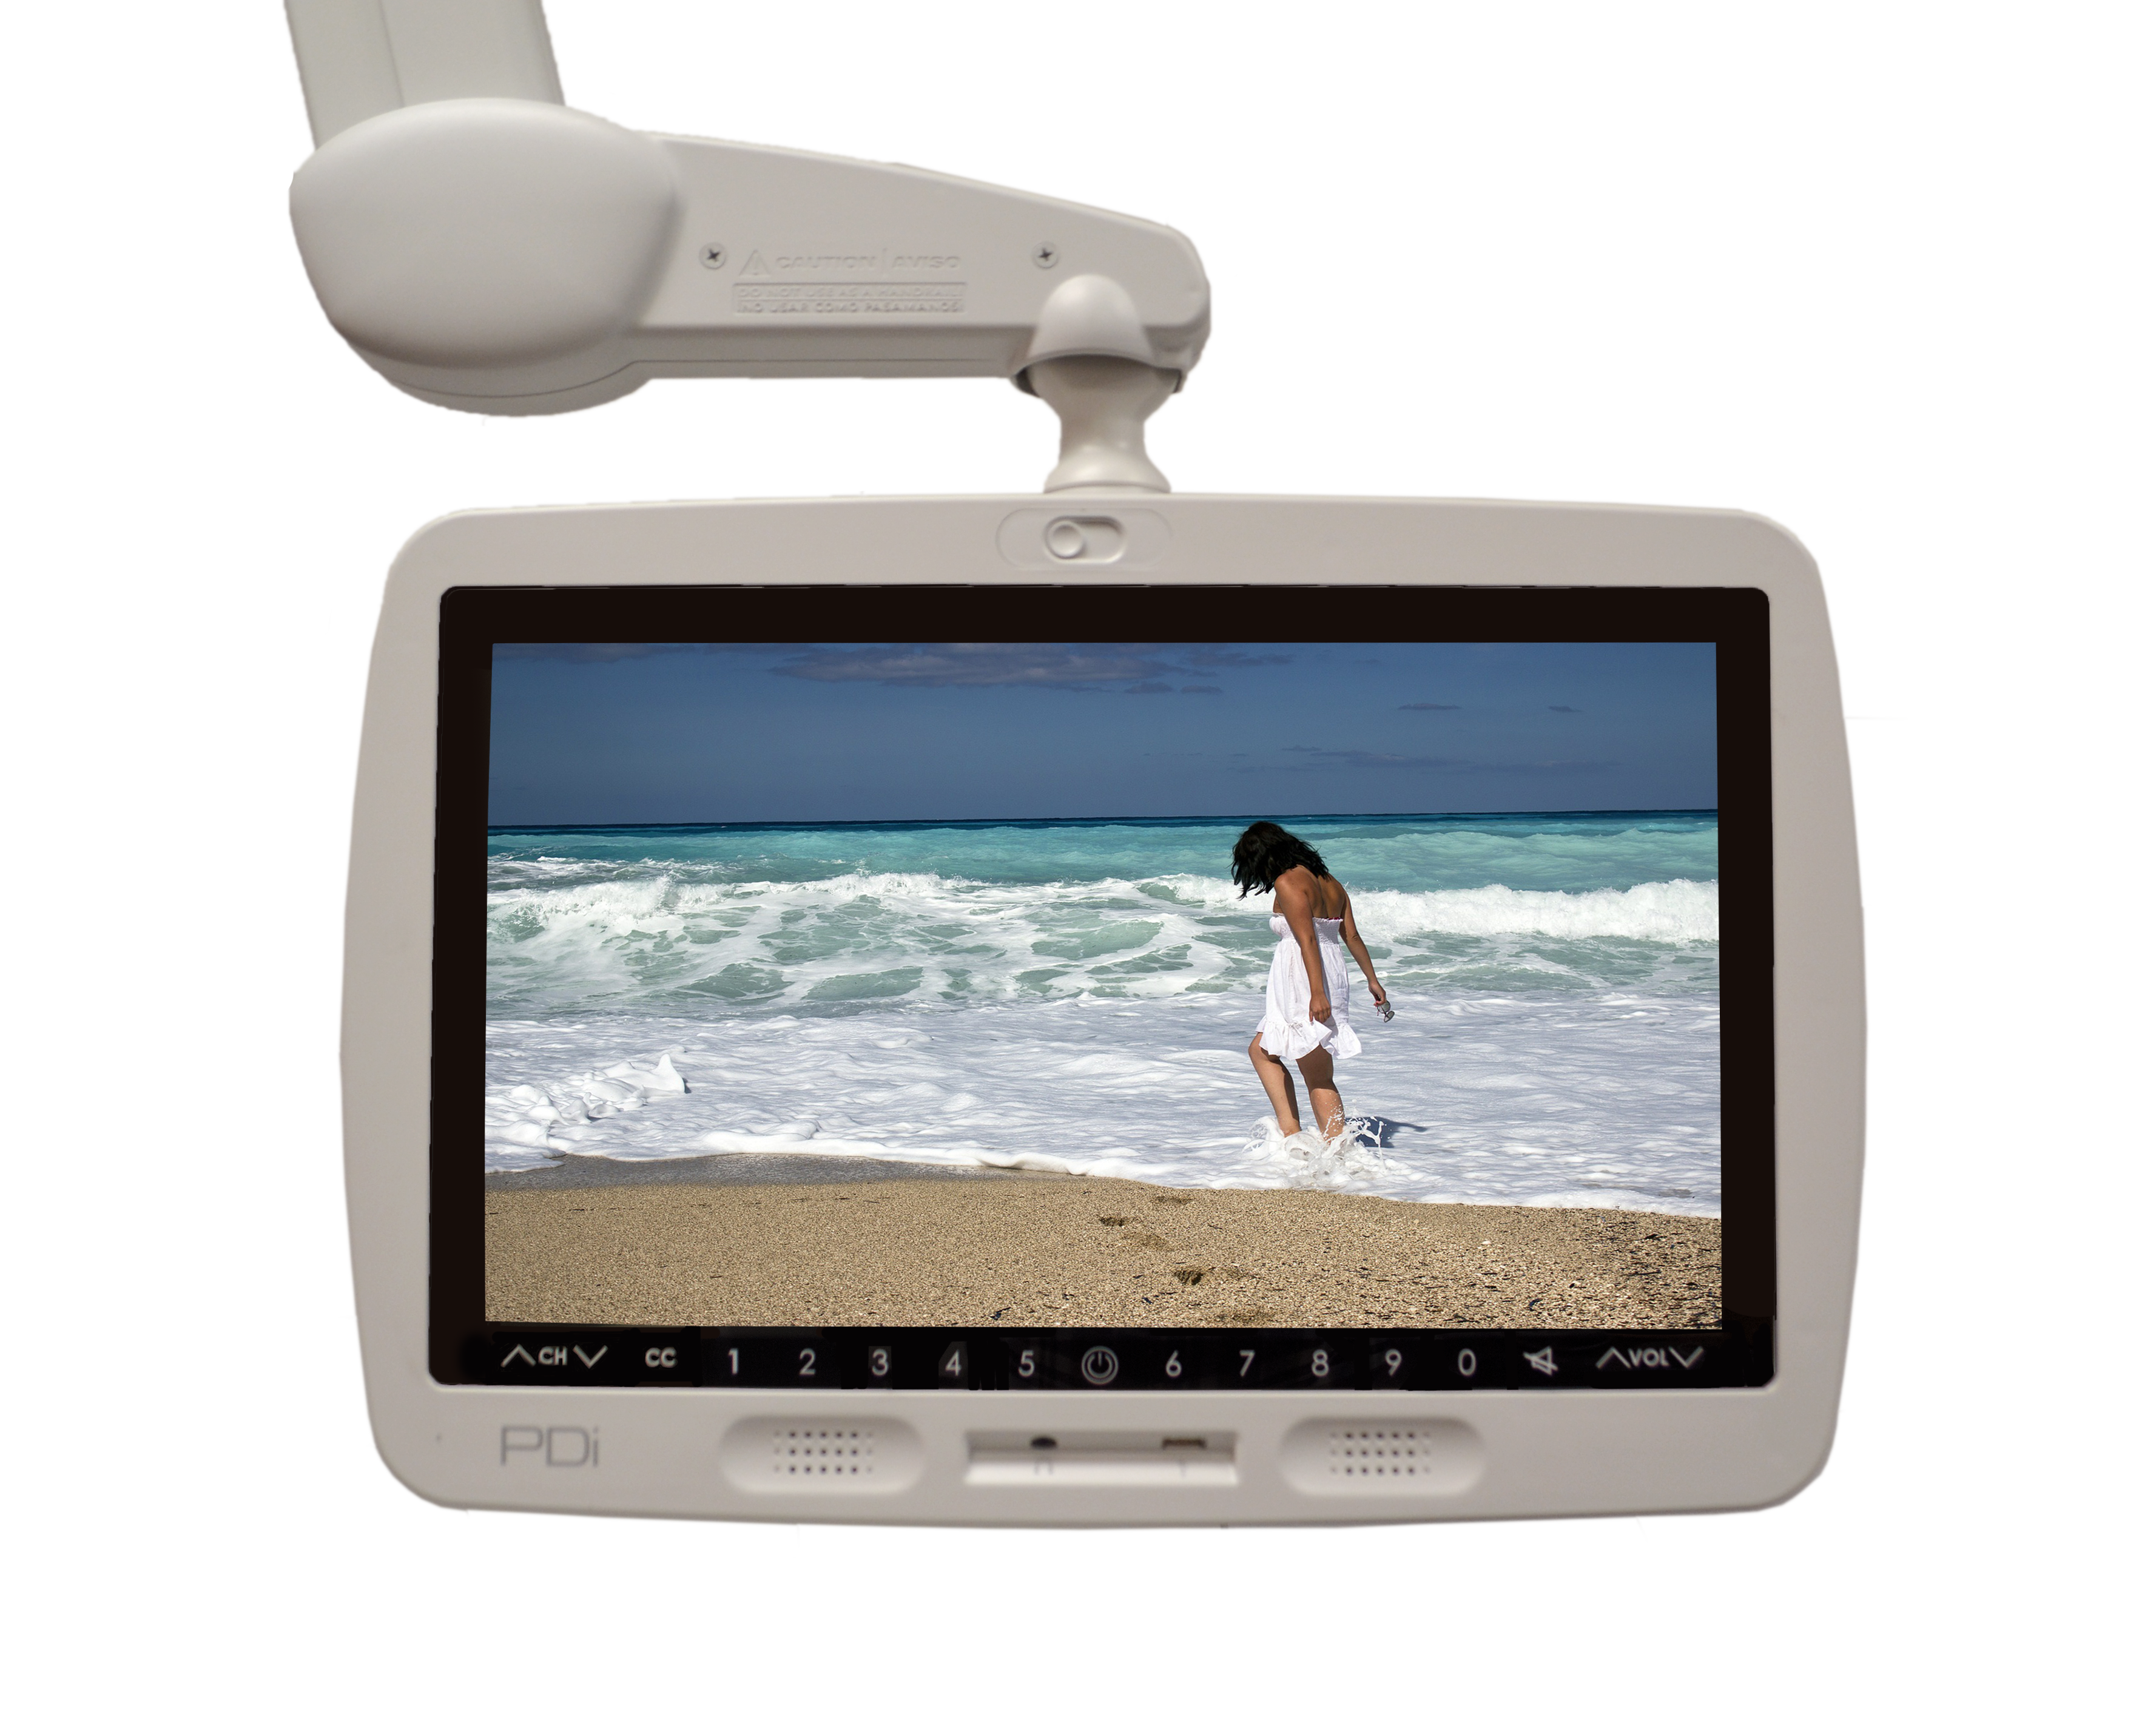 PDi Healthcare-grade TV and Tablet Solutions